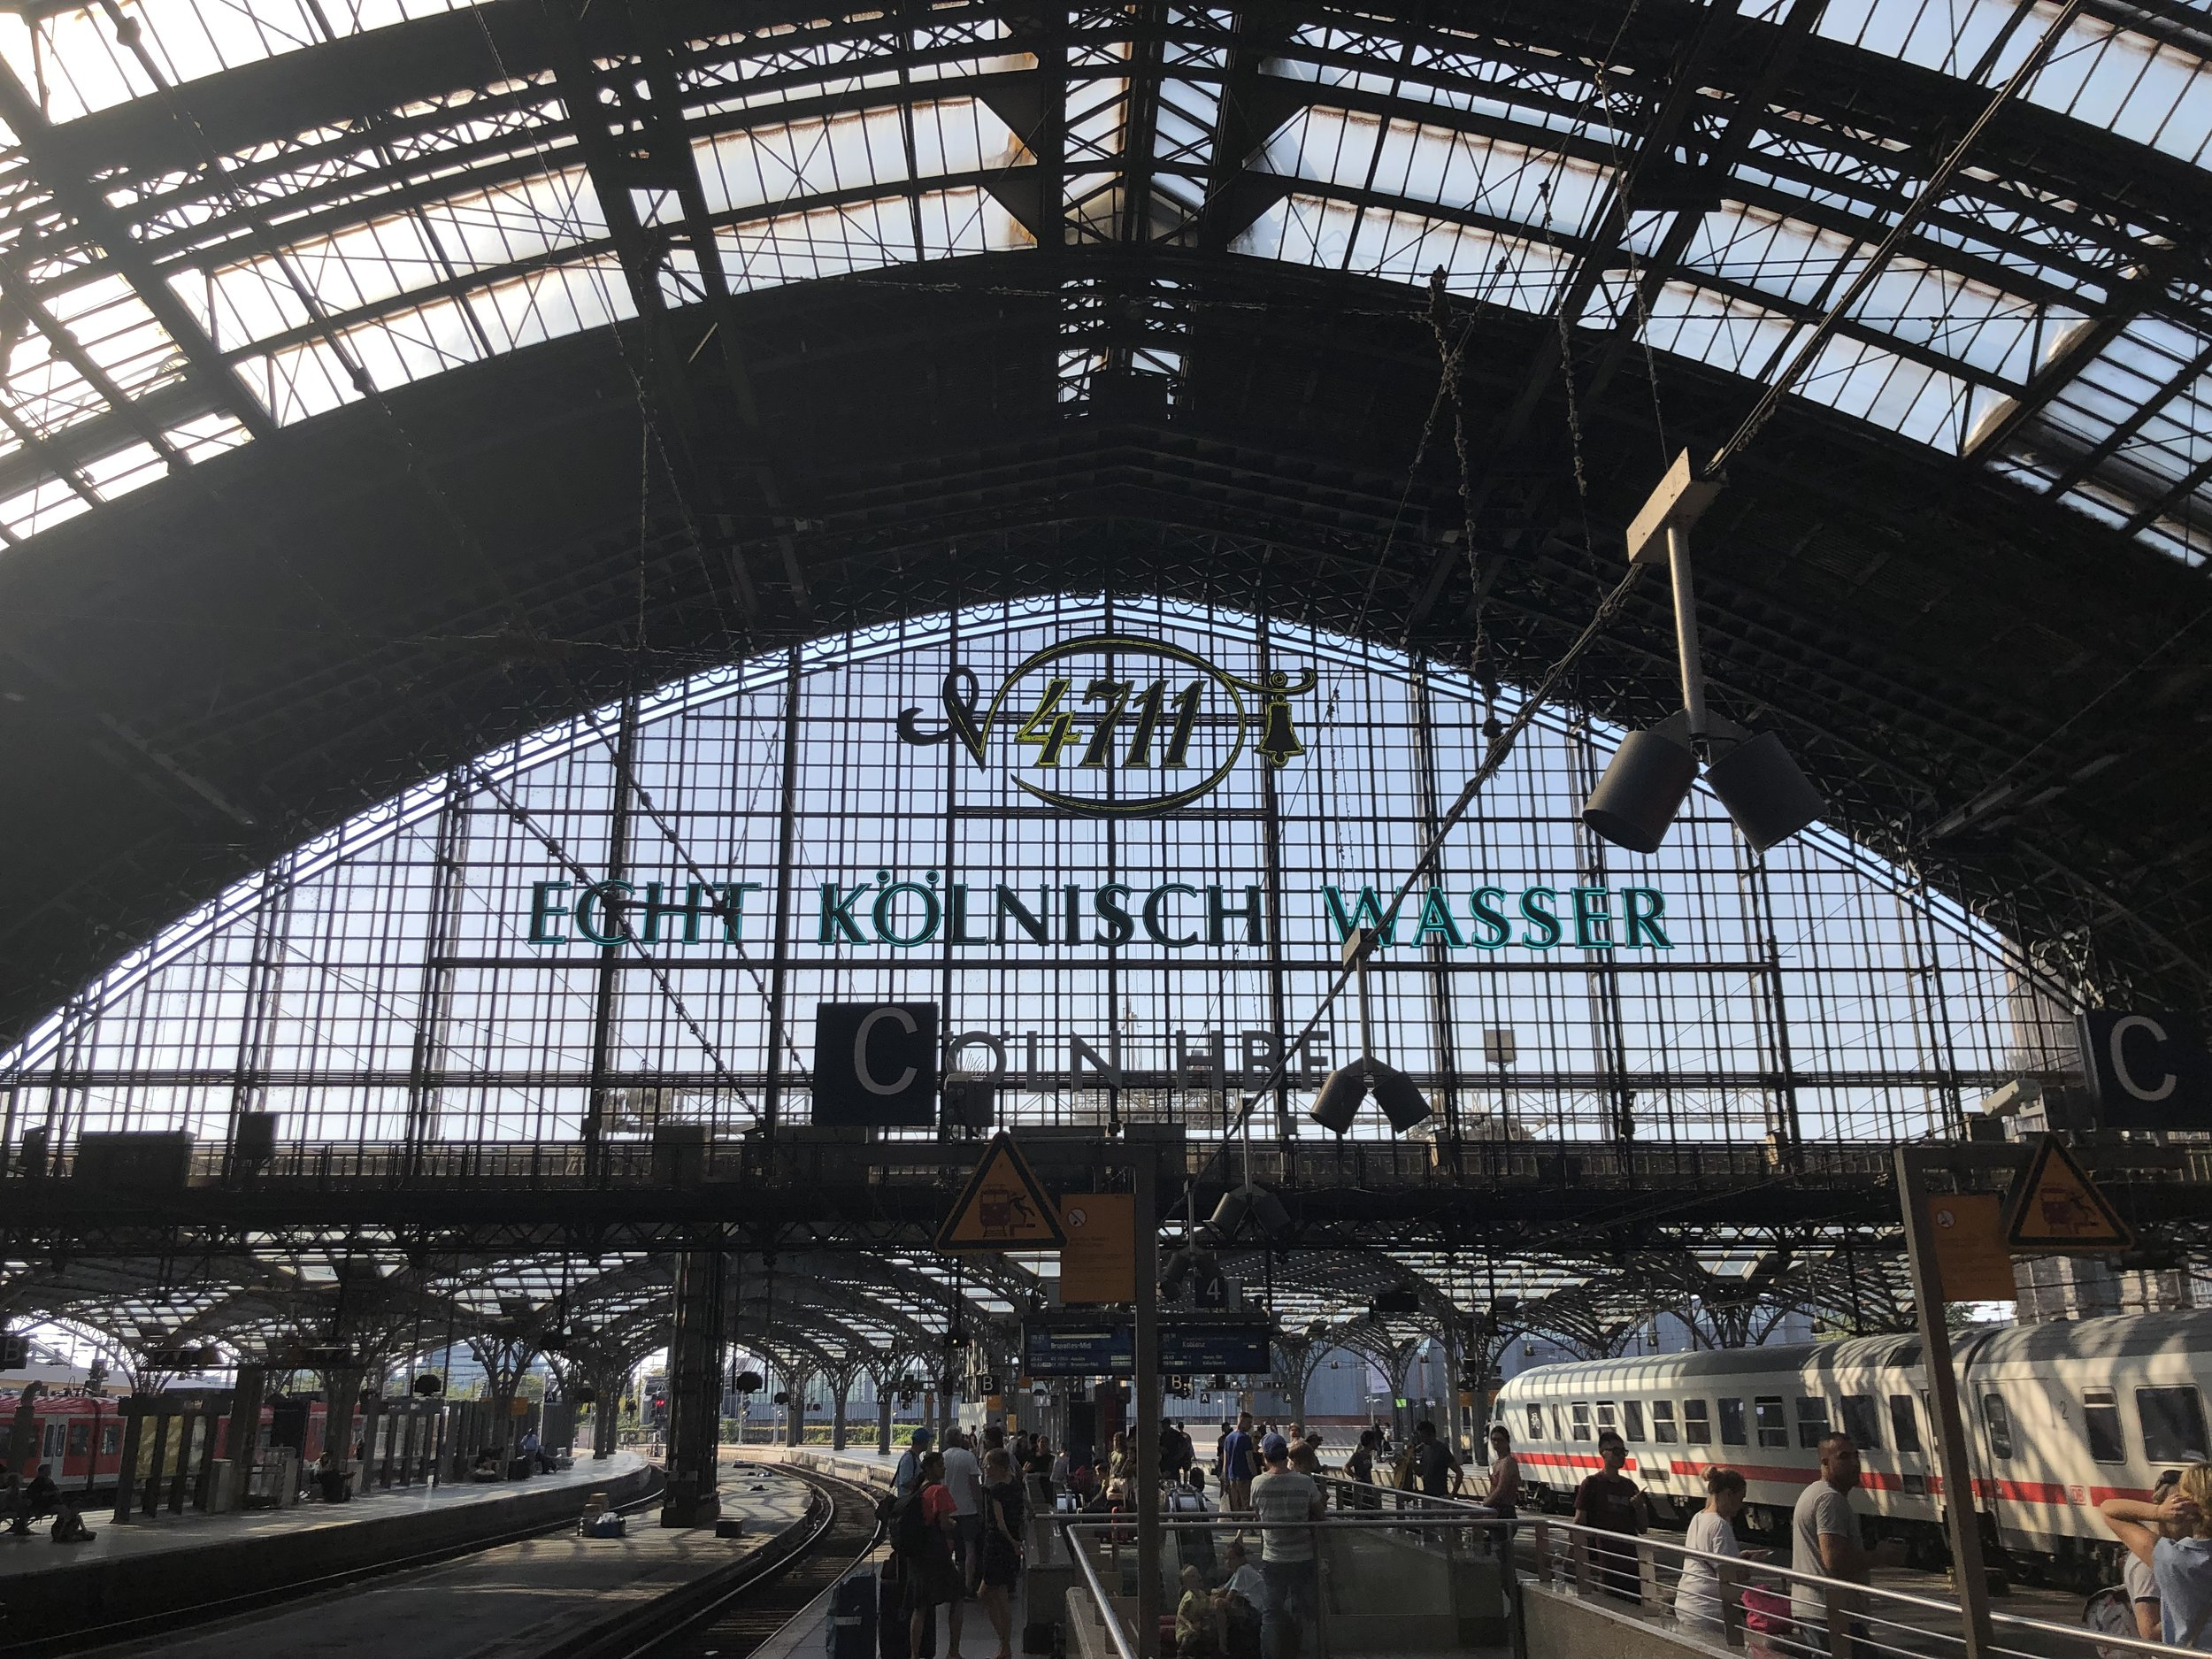 We mostly traveled by rail while in Europe. The trains in Europe are excellent and cheap. This is the Cologne stations on the day we left for Amsterdam.